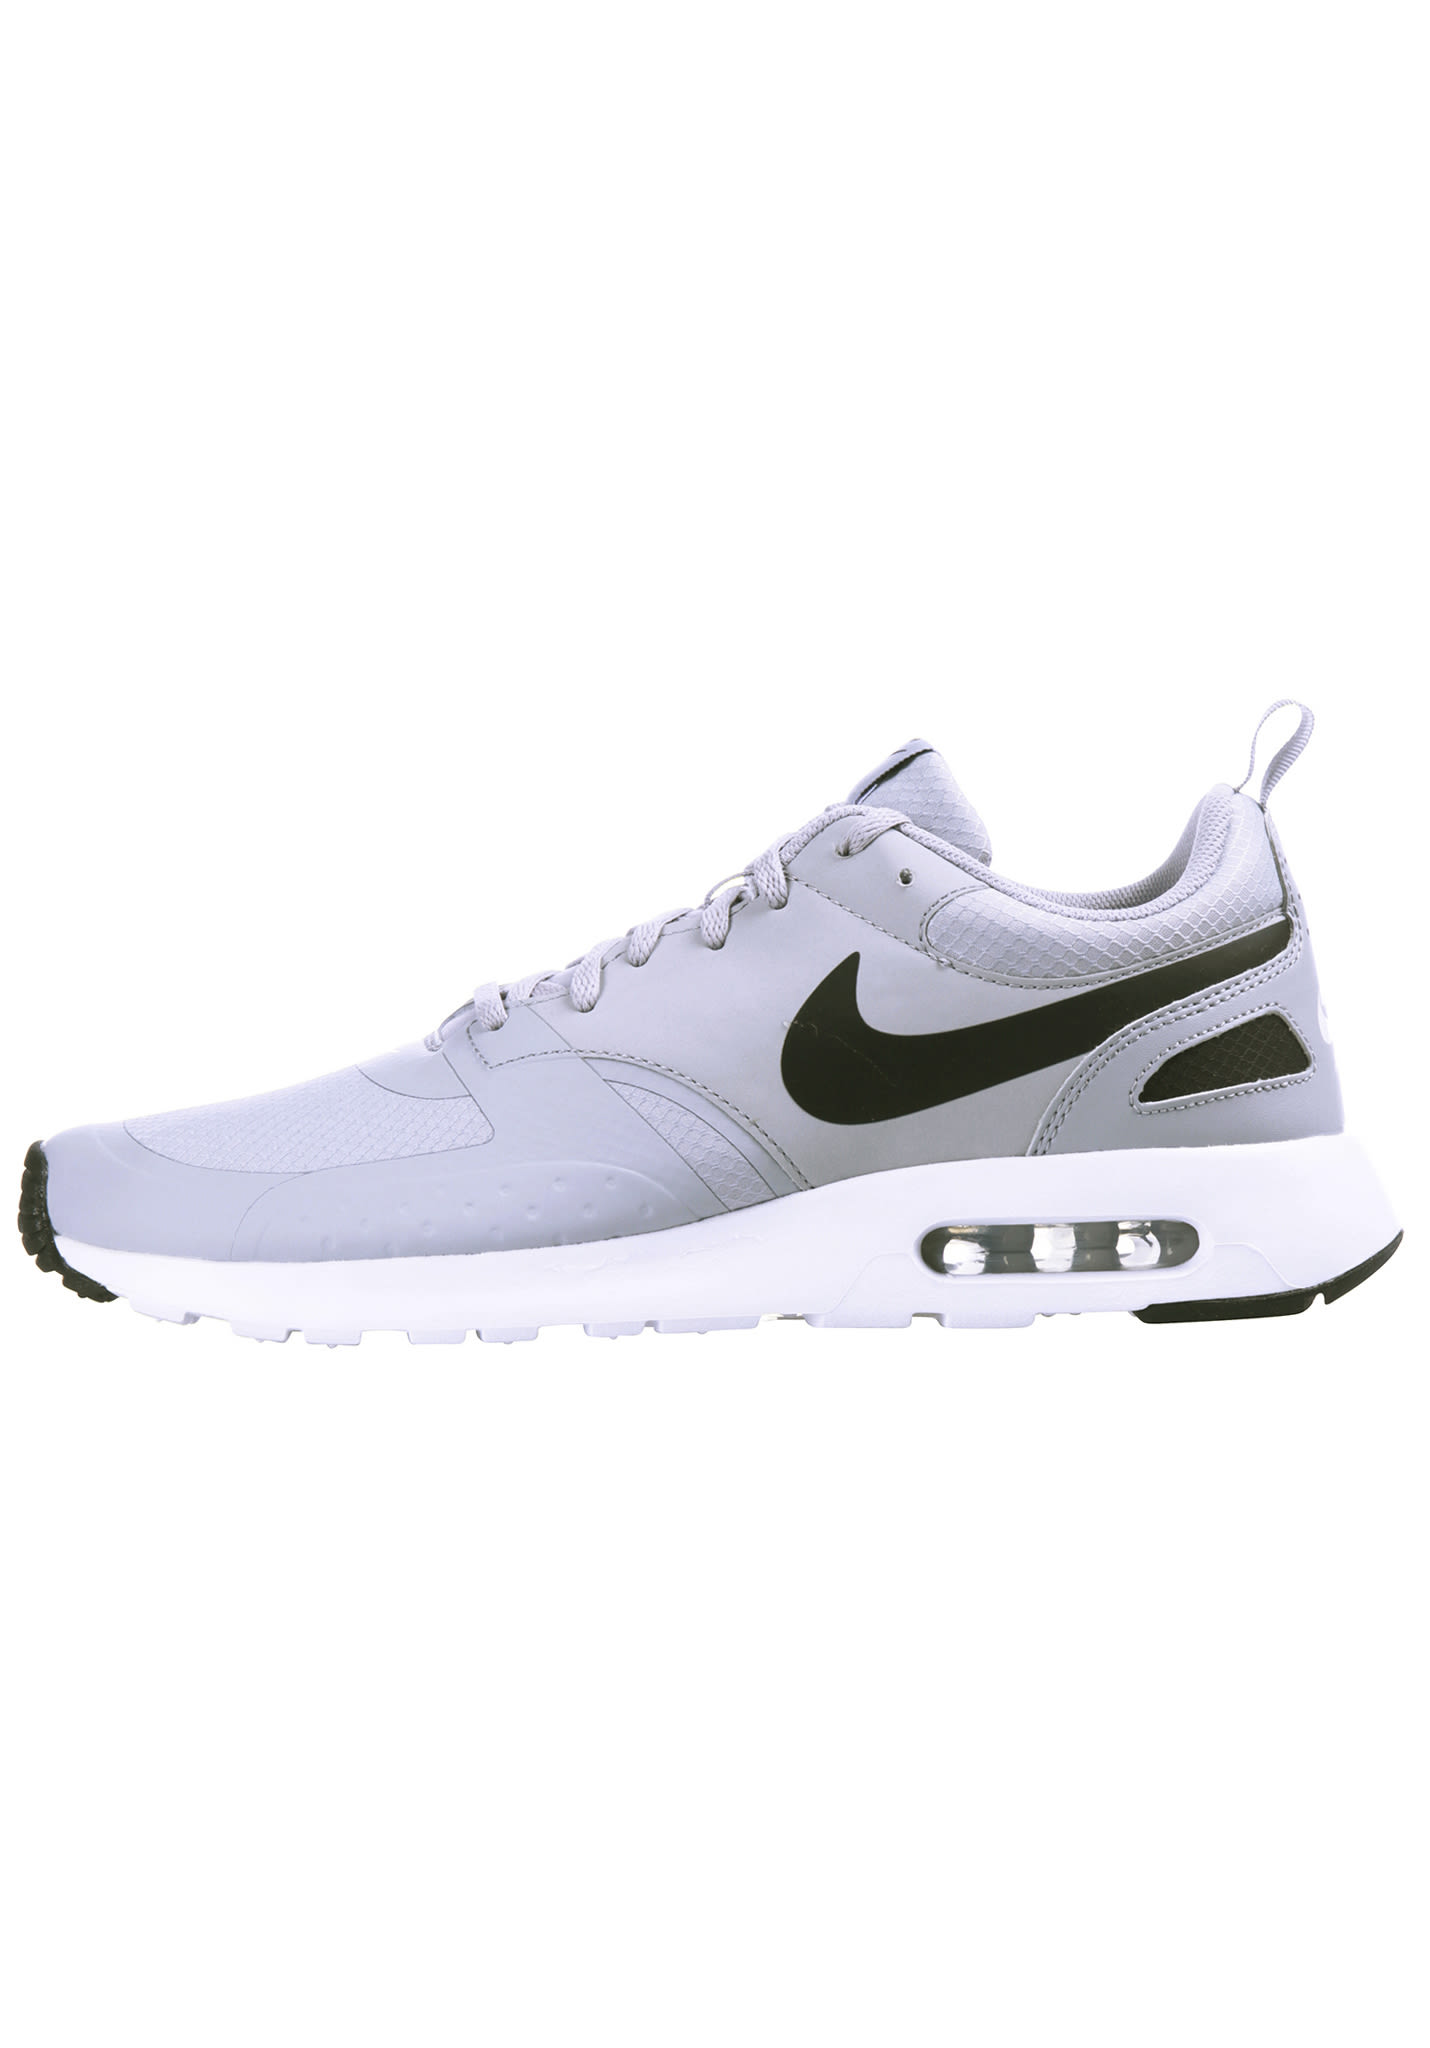 new product df39b 785bc NIKE SPORTSWEAR Air Max Vision SE - Sneakers voor Heren - Grijs - Planet  Sports